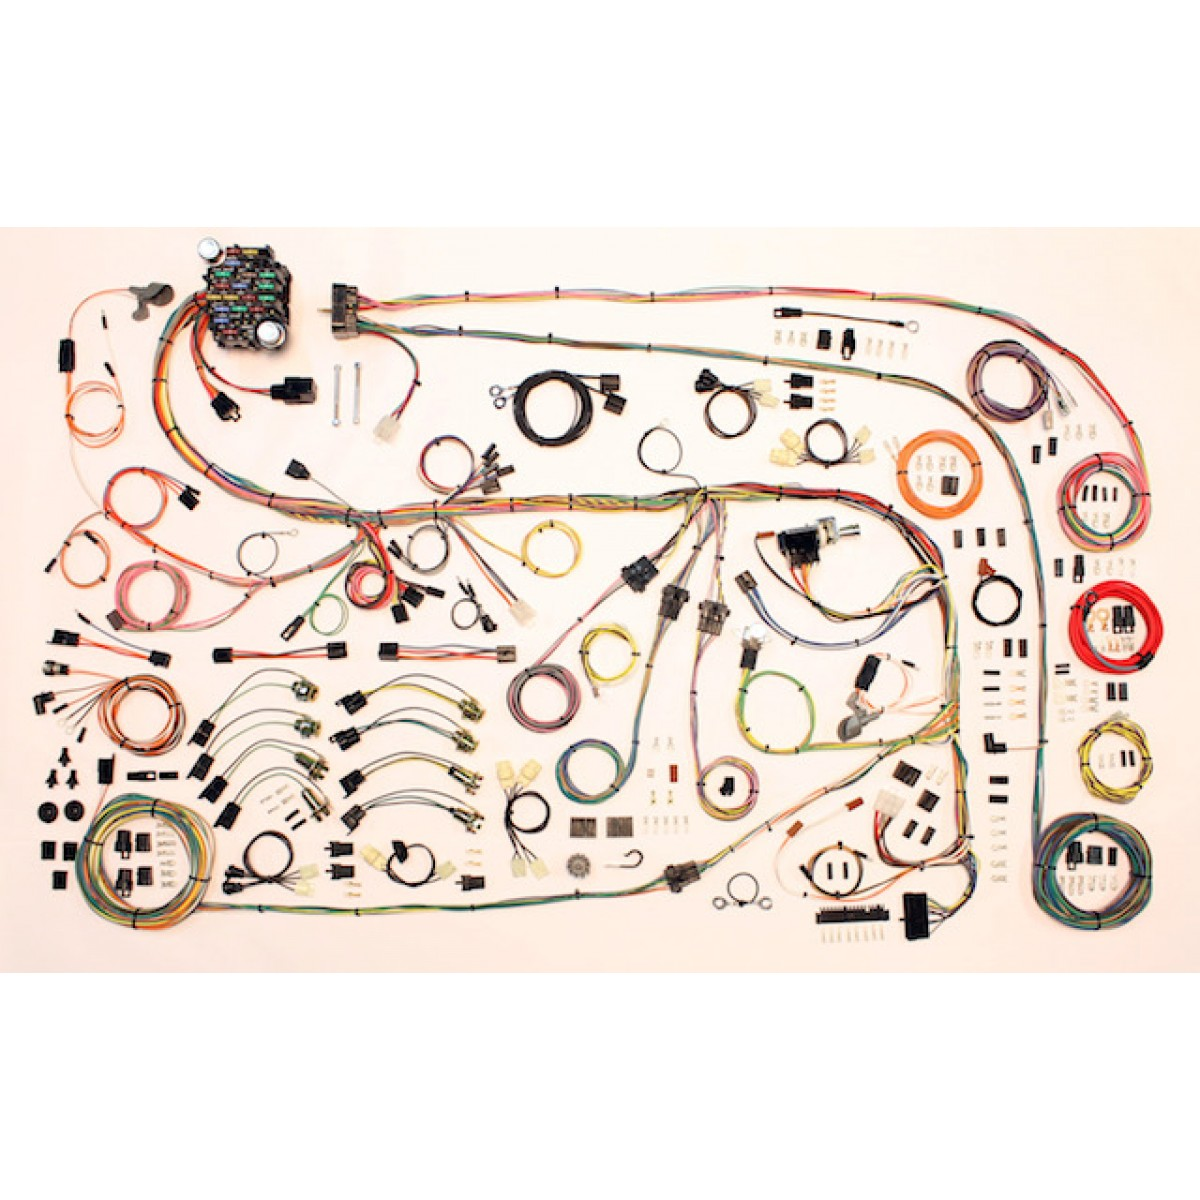 Dodge Dart Wiring Harness Archive Of Automotive Diagram 2013 Radio Complete Kit 1967 75 Part 510603 Rh Code510 Com 1968